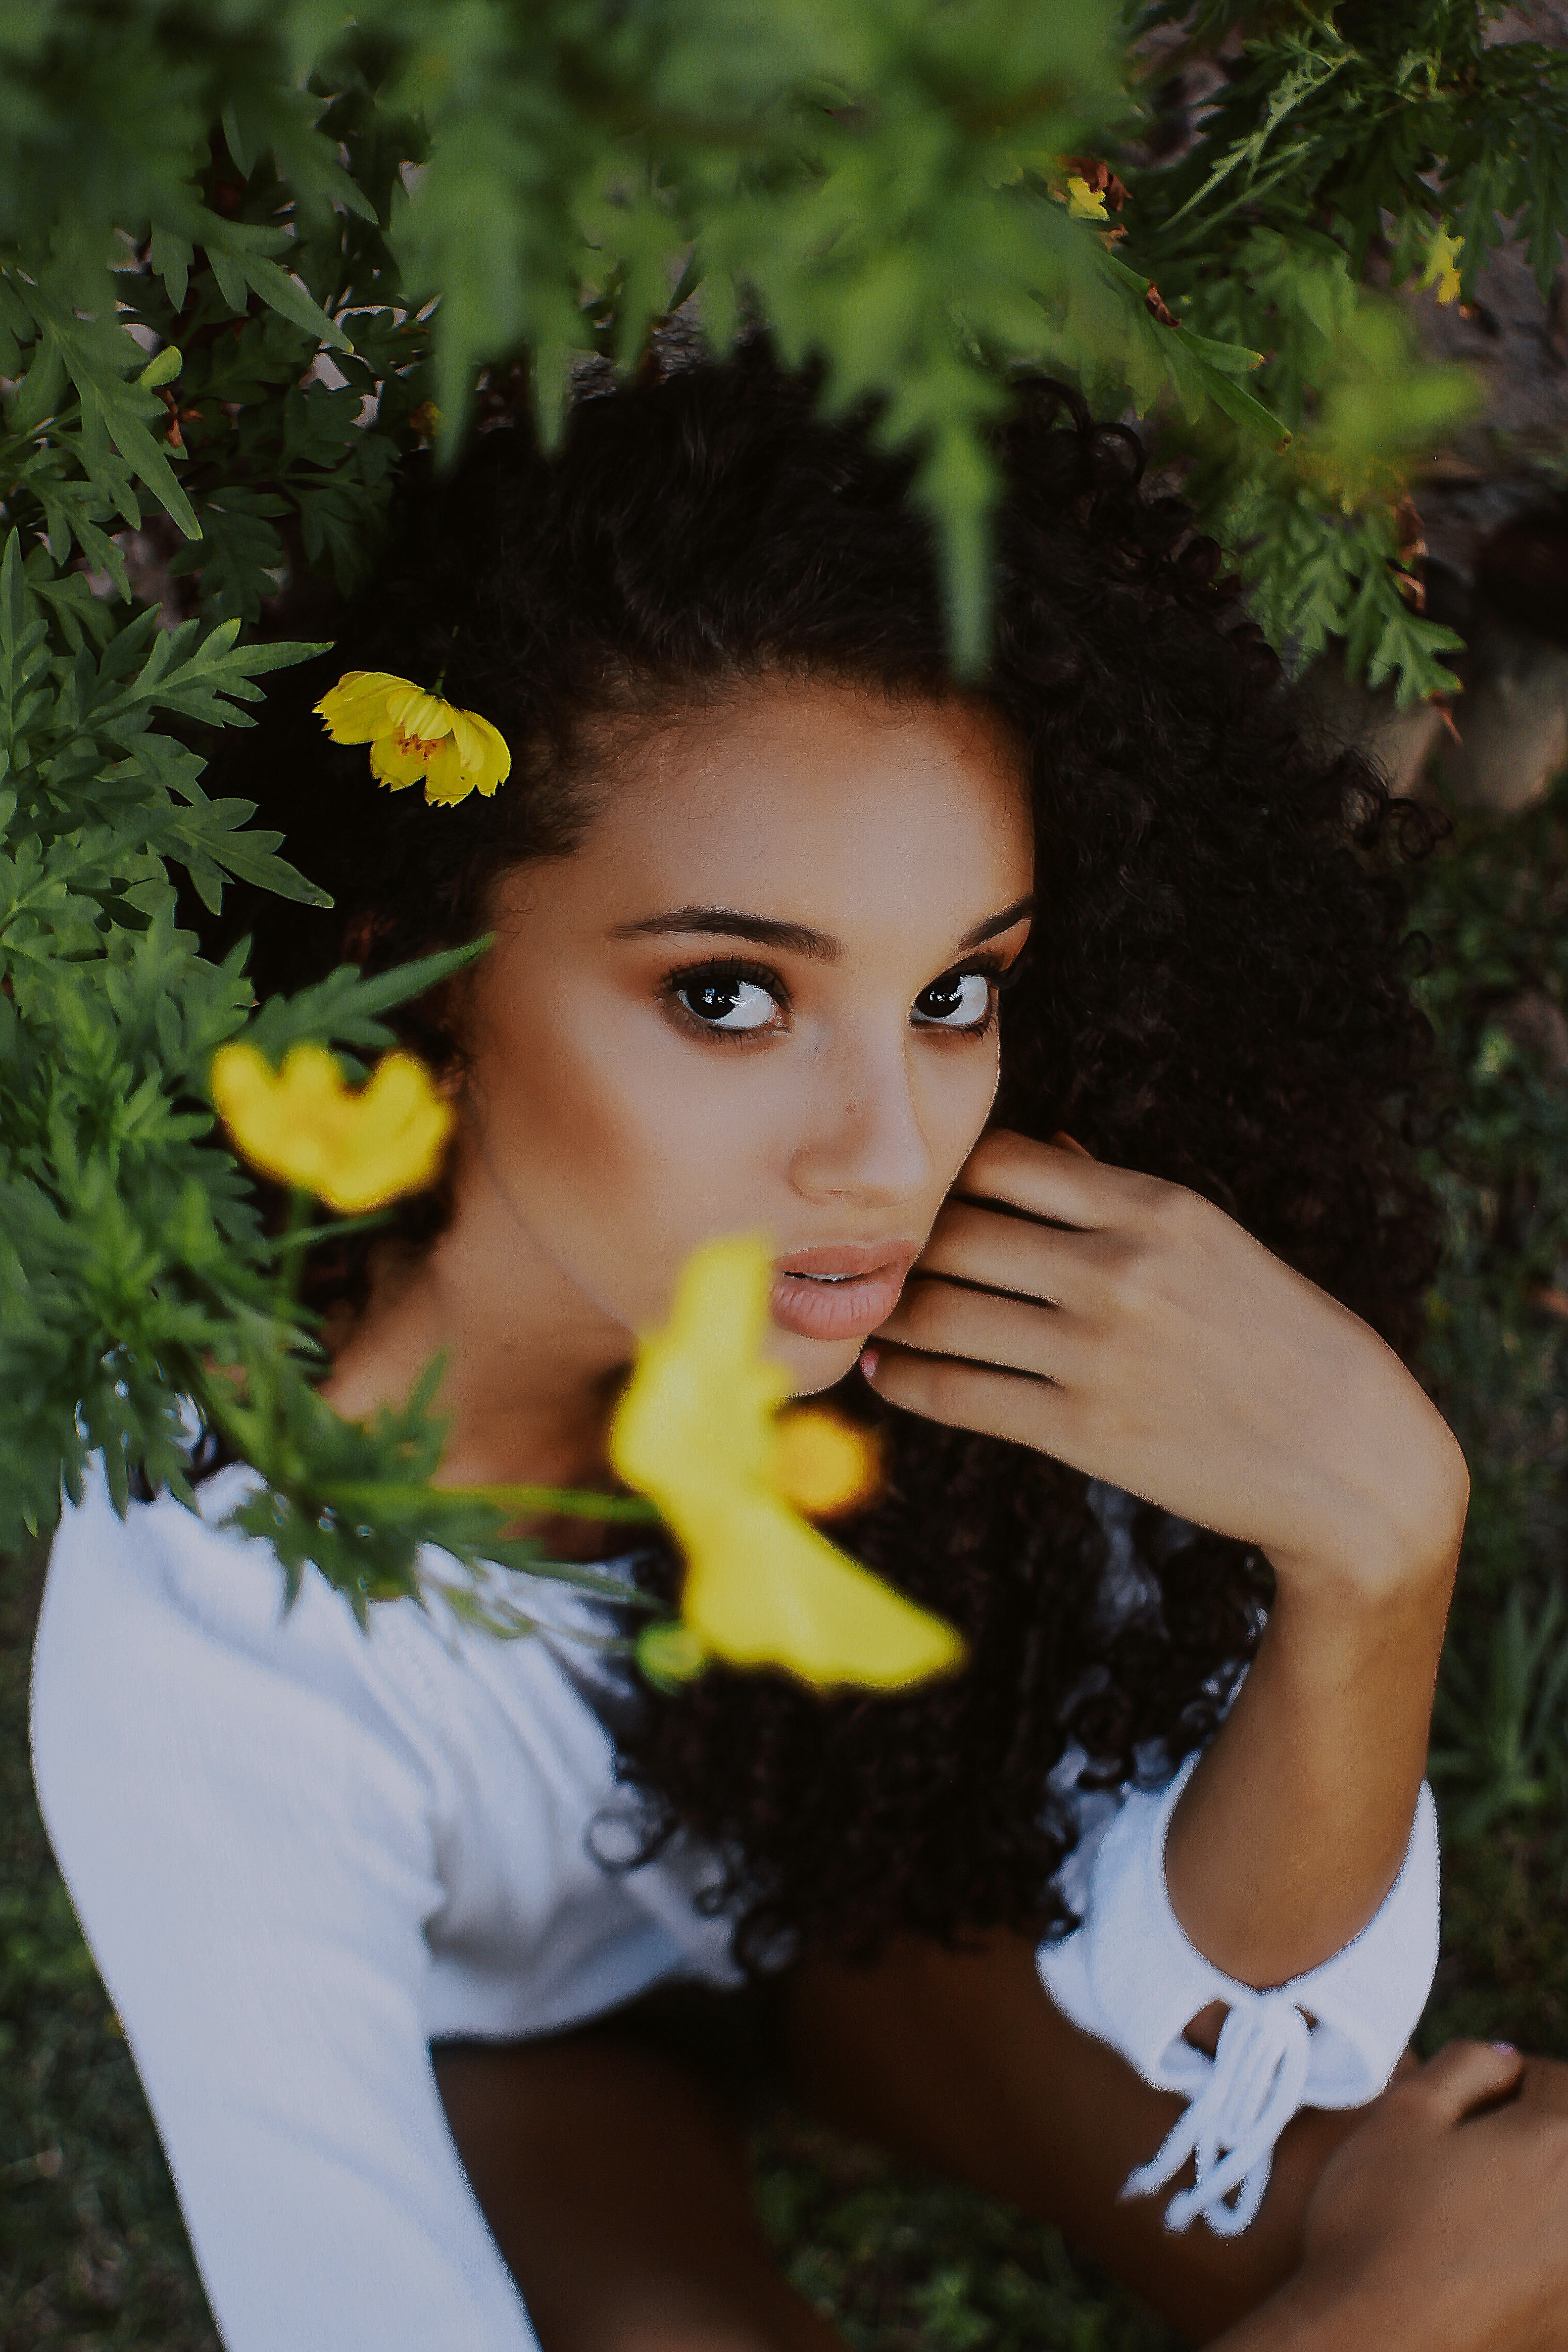 women's white scoop-neck long-sleeved blouse beside yellow petaled flower plants during daytime